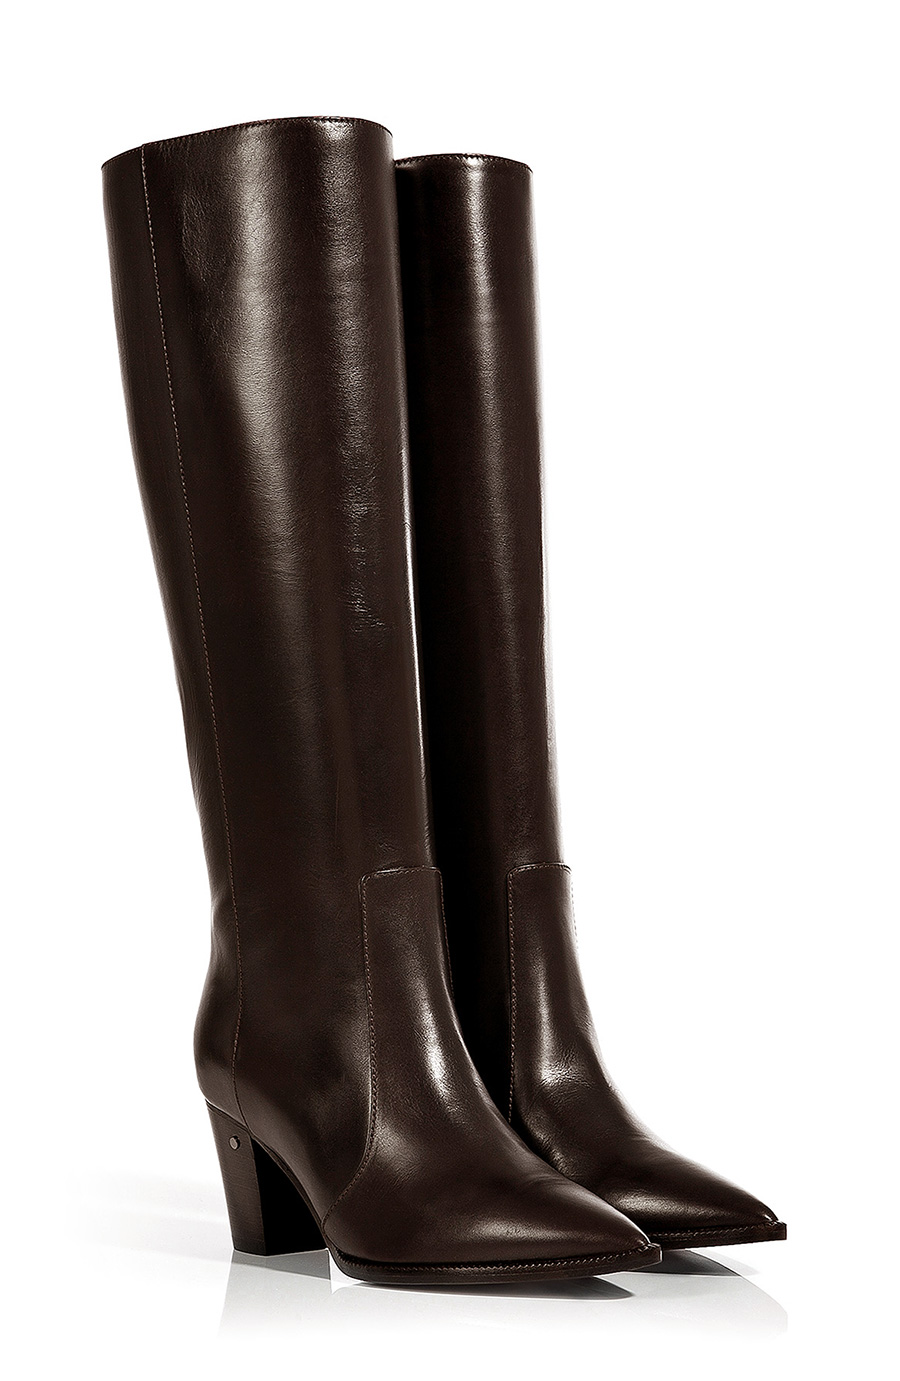 Laurence Dacade Leather Knee-high Boots In Brown